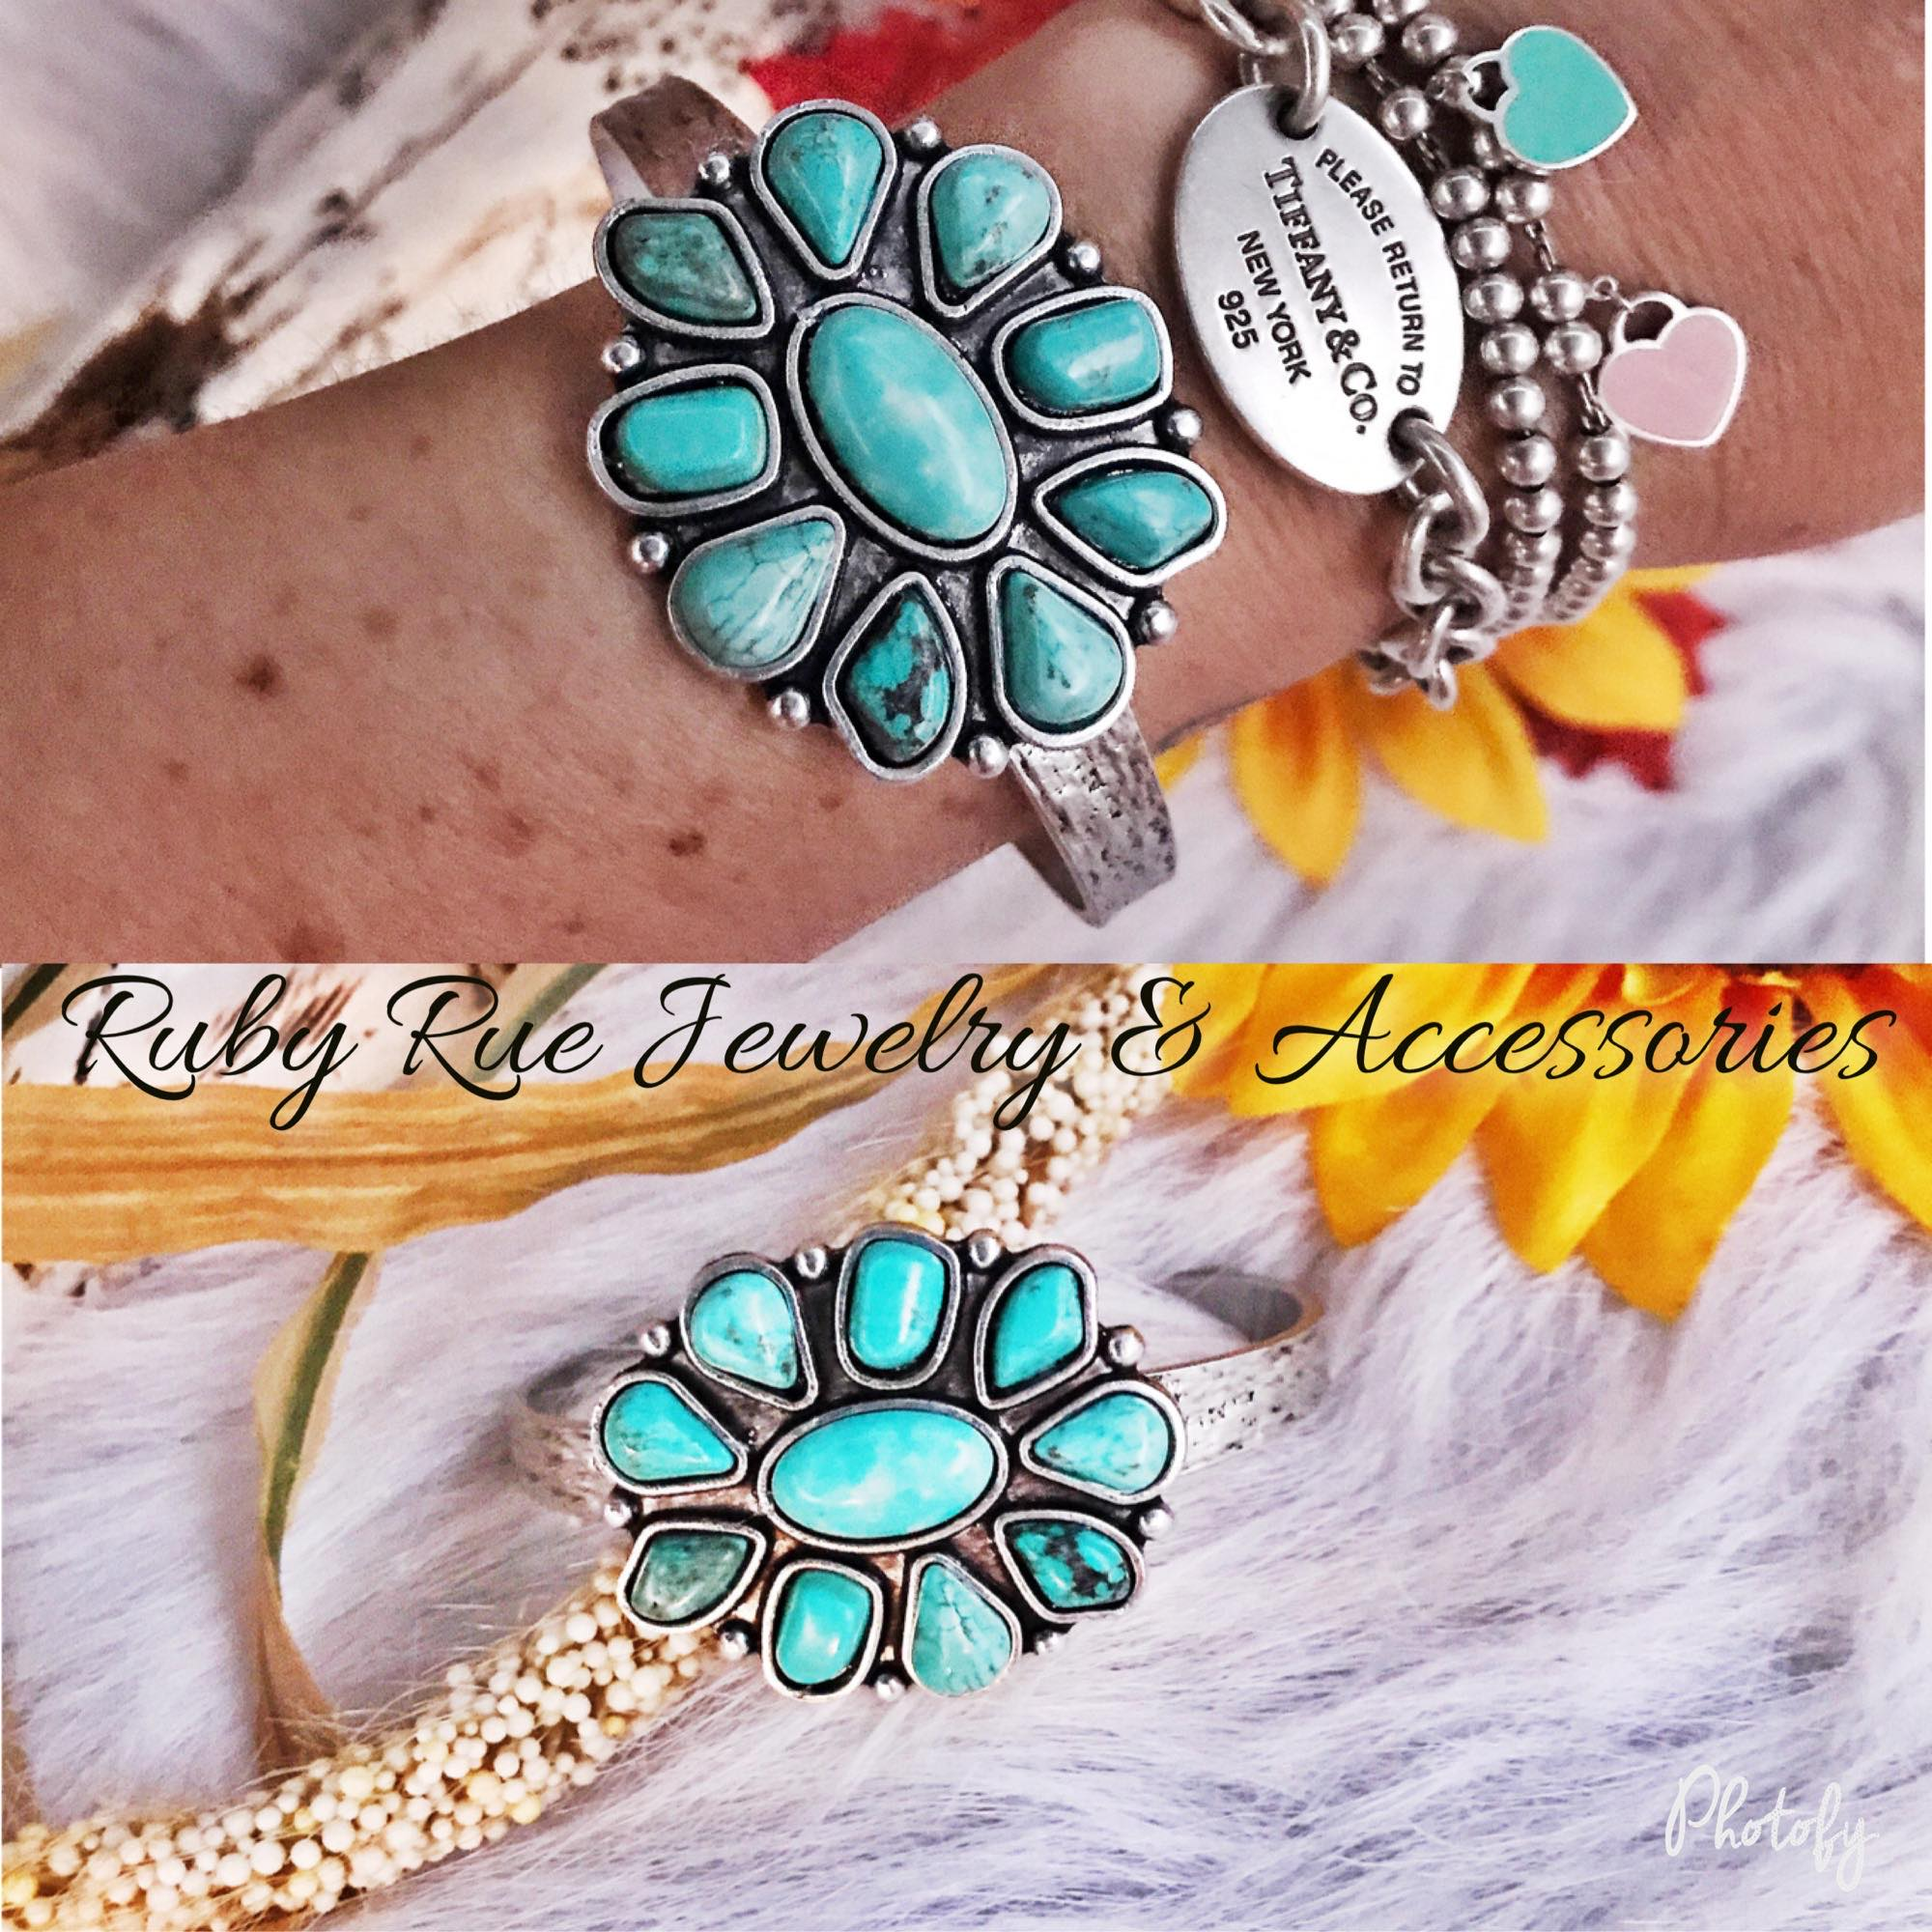 Ruby Rue Turquoise Bracelet - Ruby Rue Jewelry & Accessories